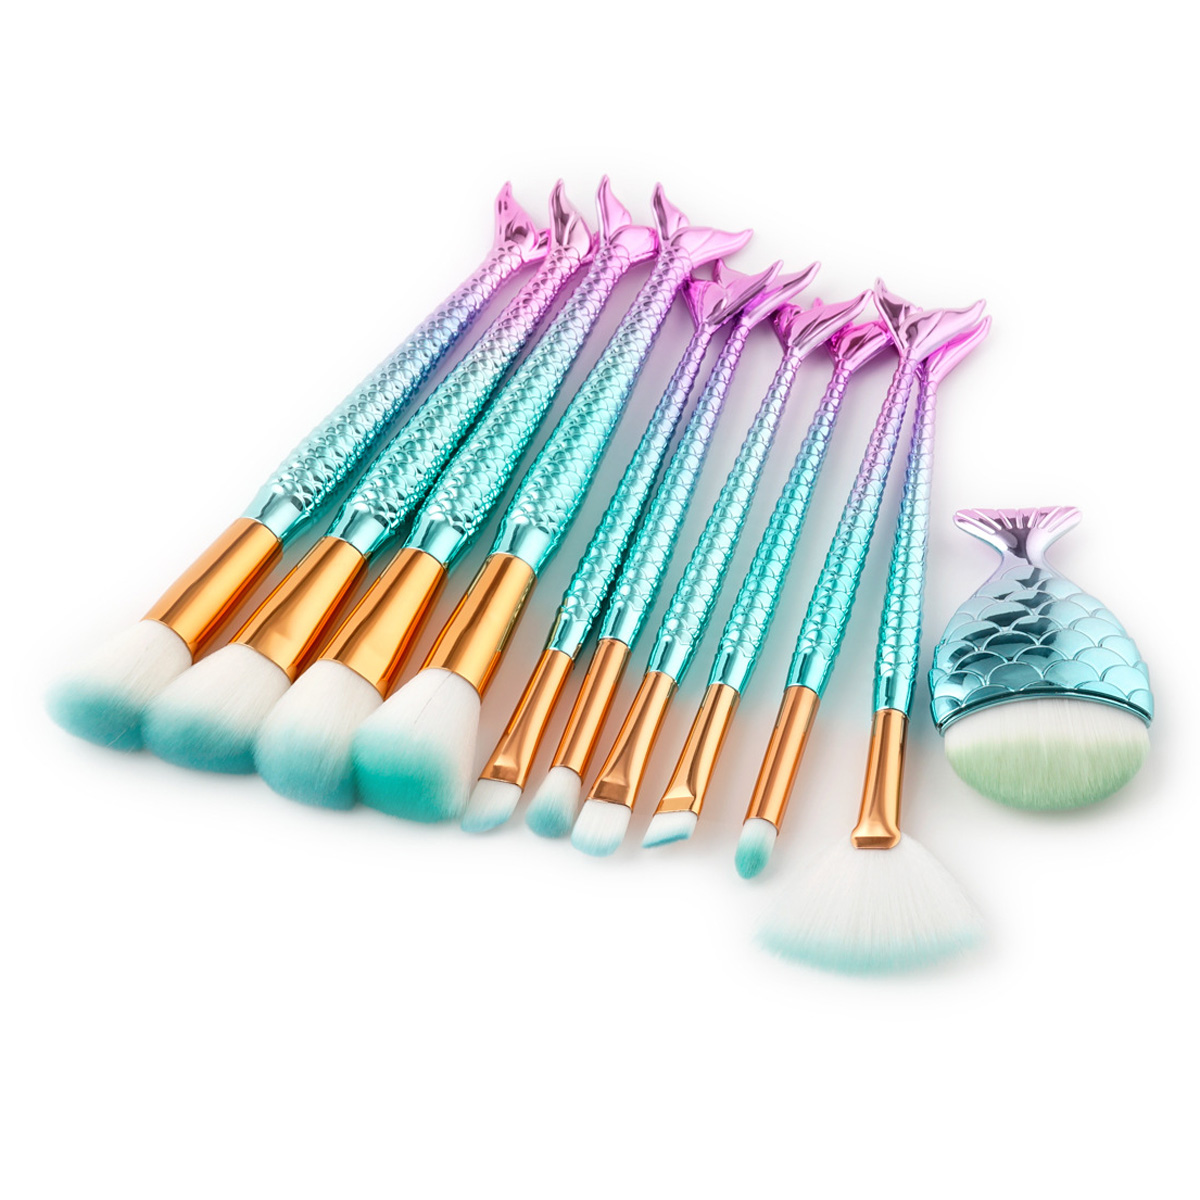 11Pc Mermaid Makeup Brush Set Eyebrow Eyeliner Blush Blending Contour Foundation Cosmetic Beauty Gradient Color Make Up Brushes foeonco 10pcs pink hair mermaid makeup brushes eyebrow eyeliner blush blending contour foundation cosmetic make up fish brush